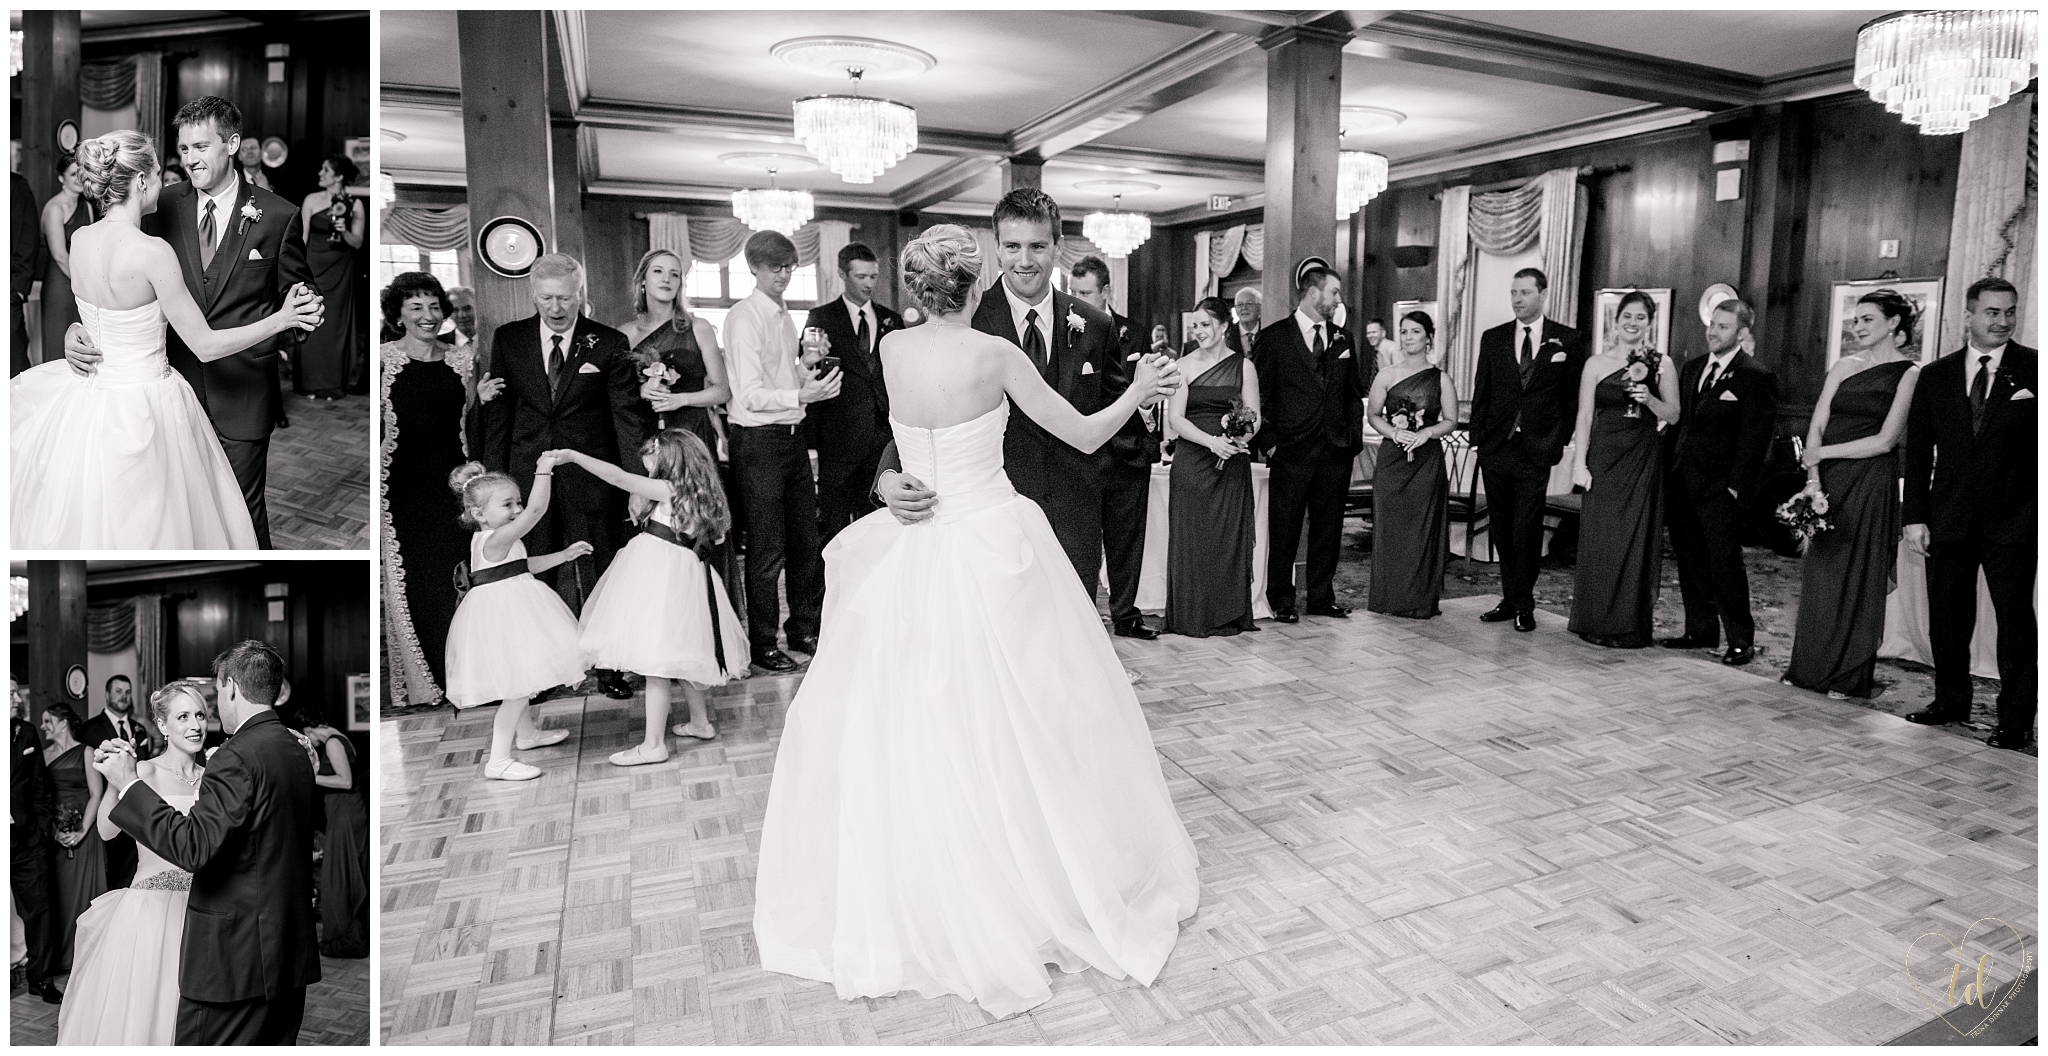 Bride and Groom's First Dance in Black and White Photography.